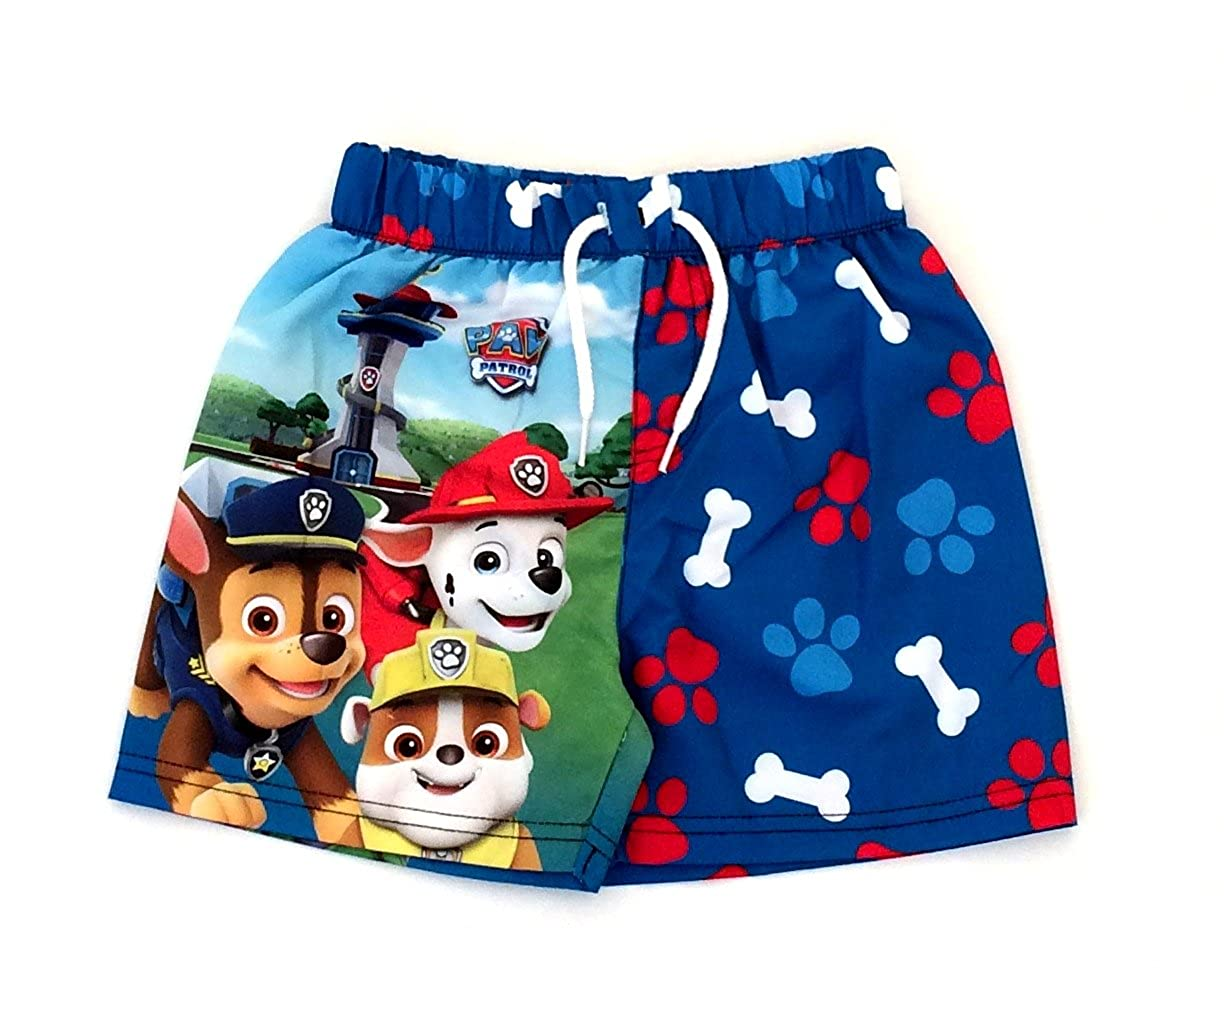 Boys Swimming Shorts Trunks Paw Patrol 18-24 Months to 4-5 Years